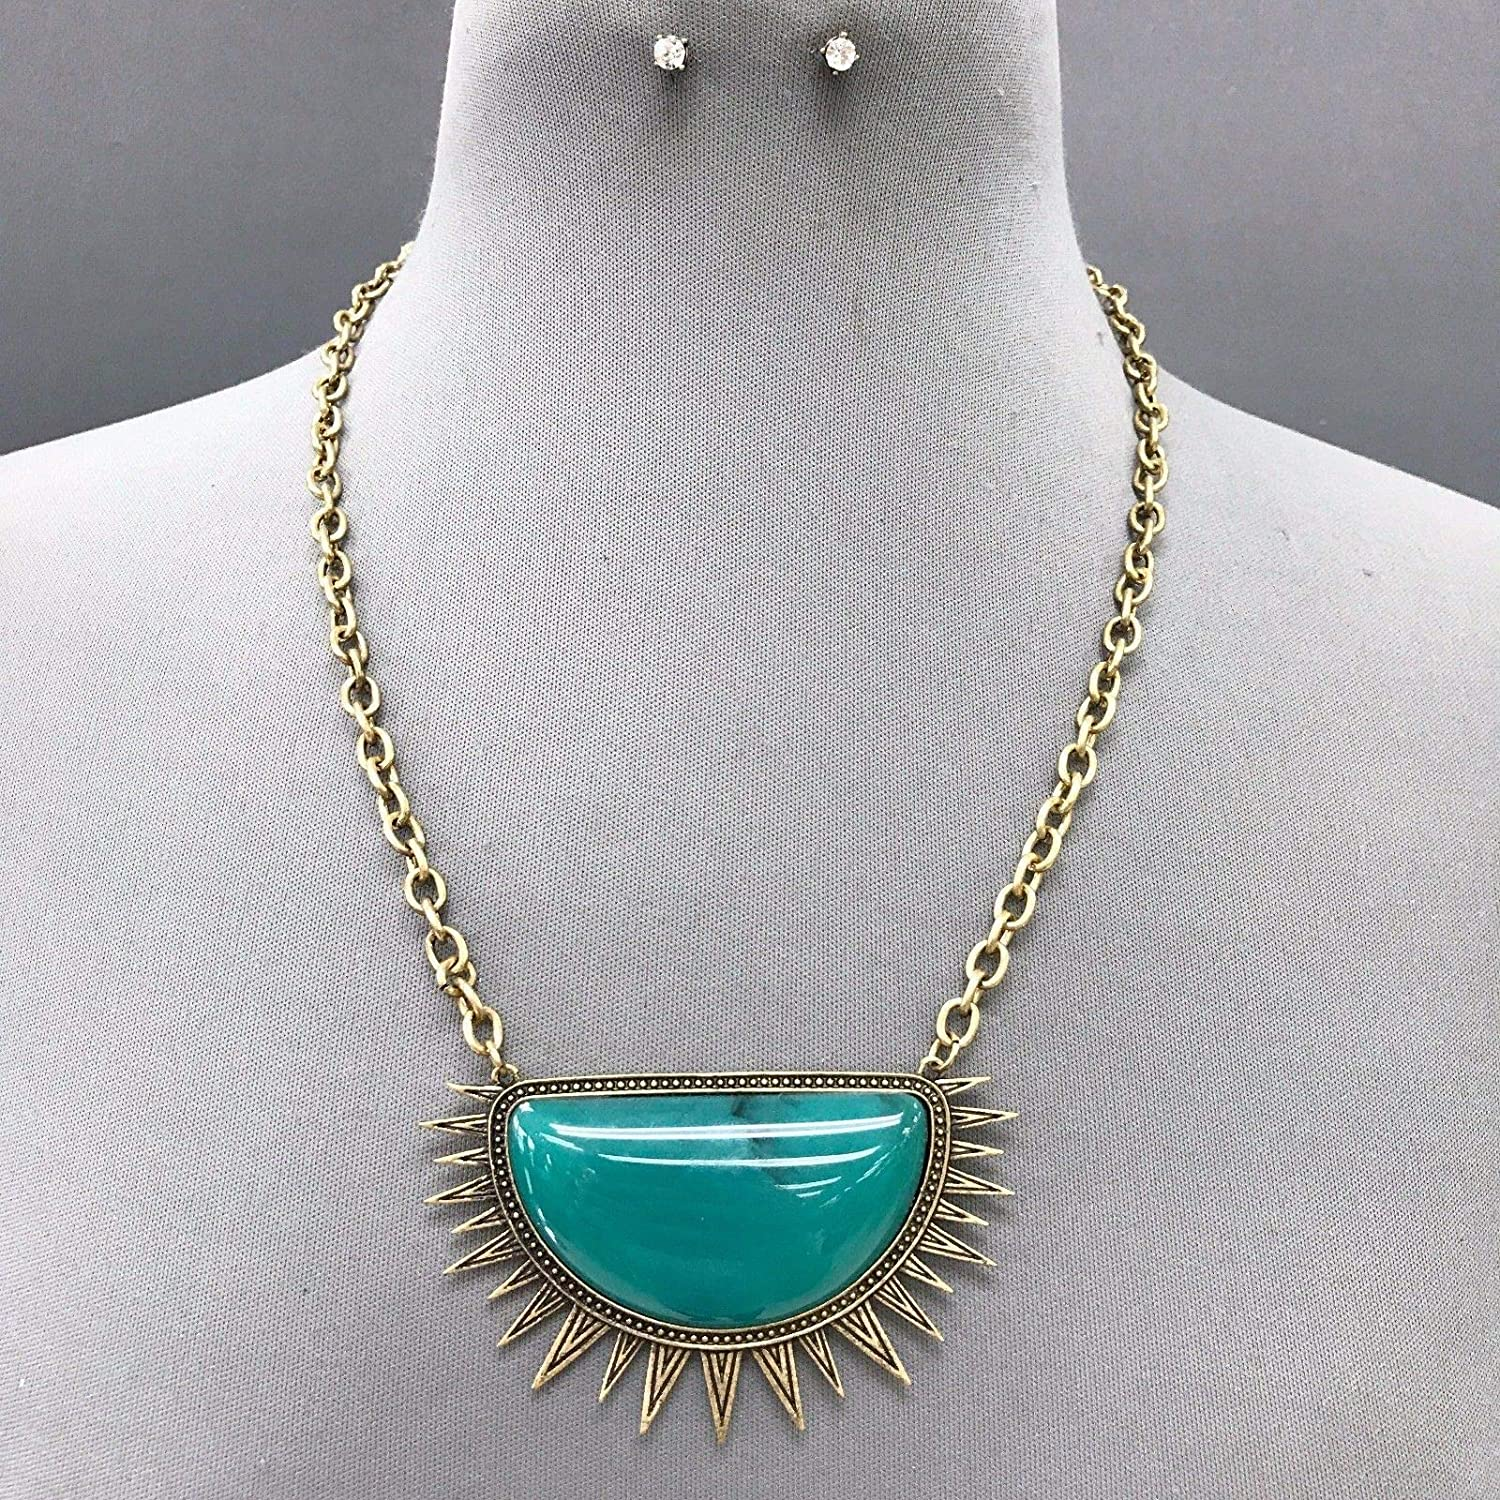 Antique Gold Chain Turquoise Half Circle Triangle Spikes Necklace Earrings